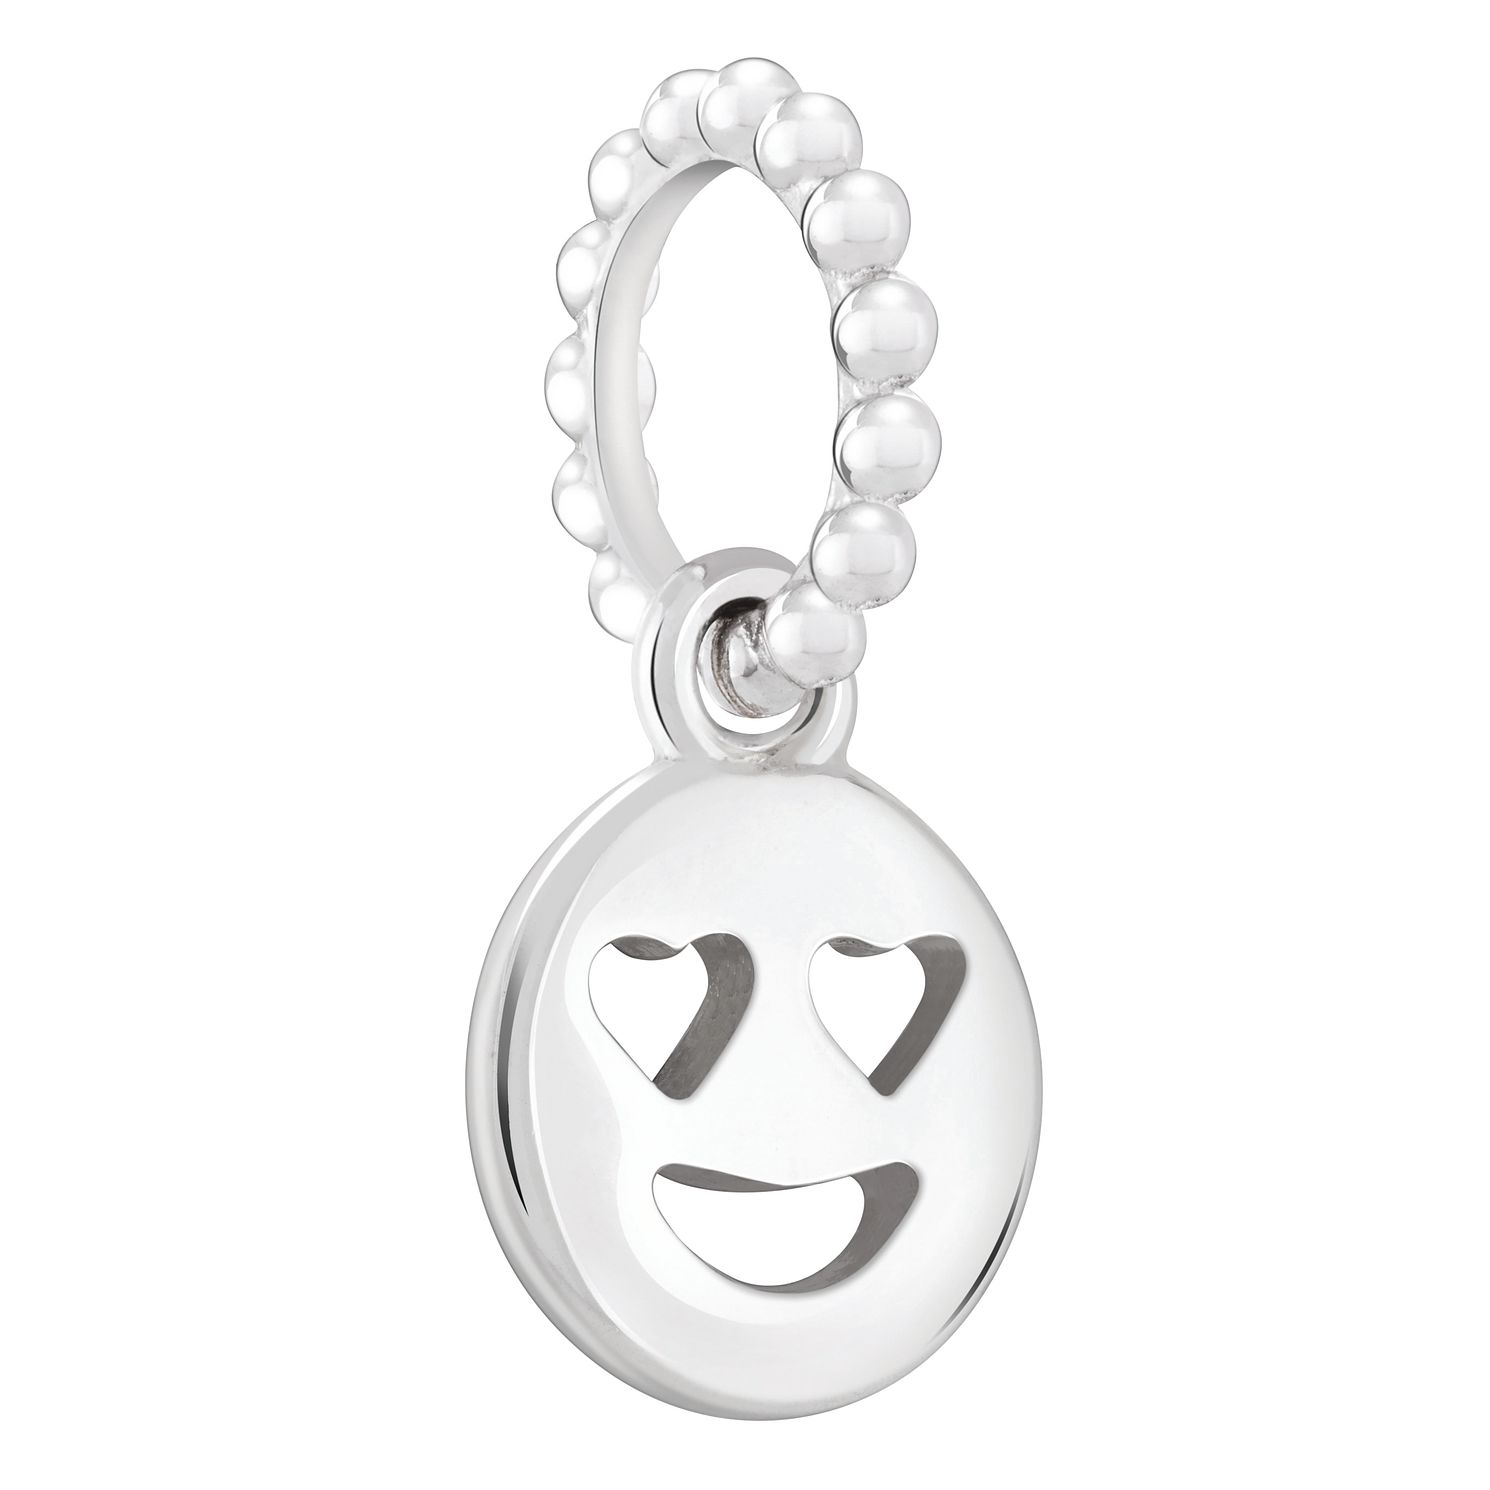 Chamilia Smiley Face Emoji Sterling Silver Charm - Product number 2233711